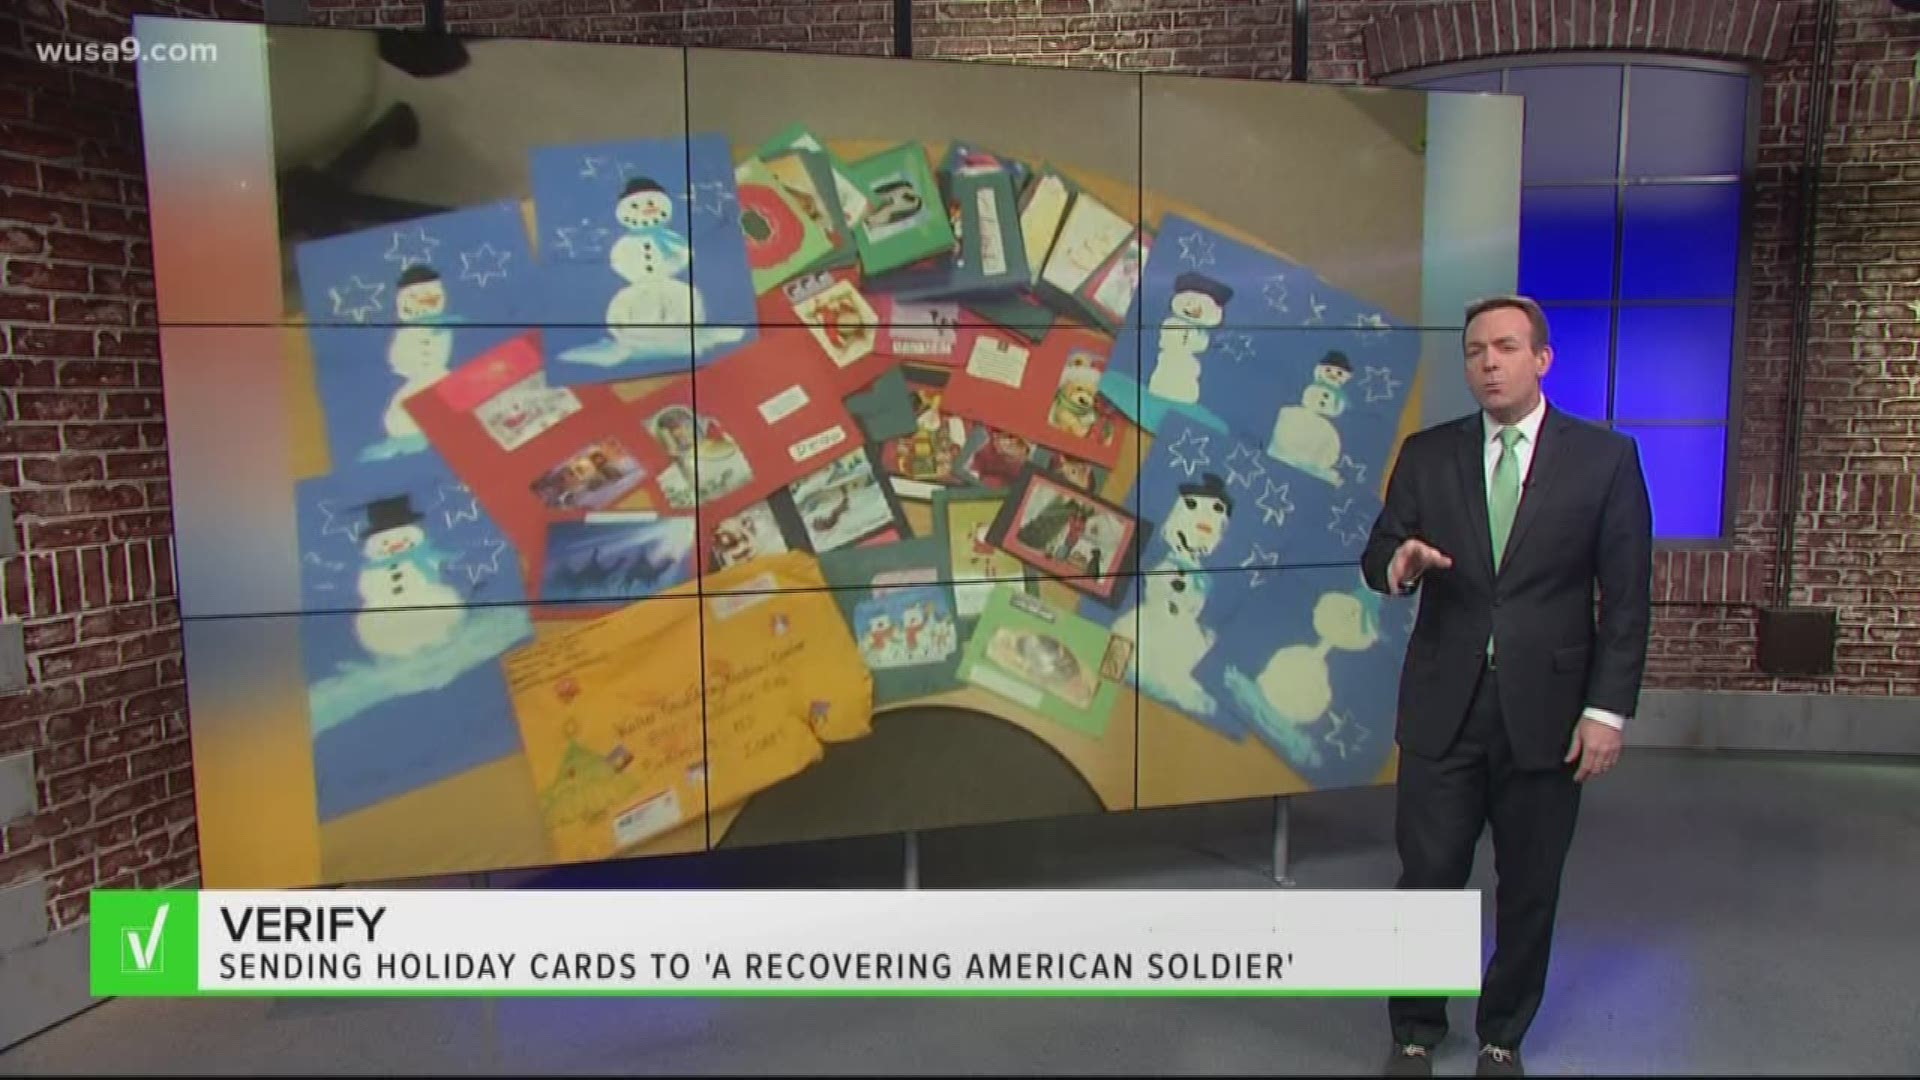 Social Media Rumor Of Sending Holiday Letters To Unnamed Solders Wusa9 Com